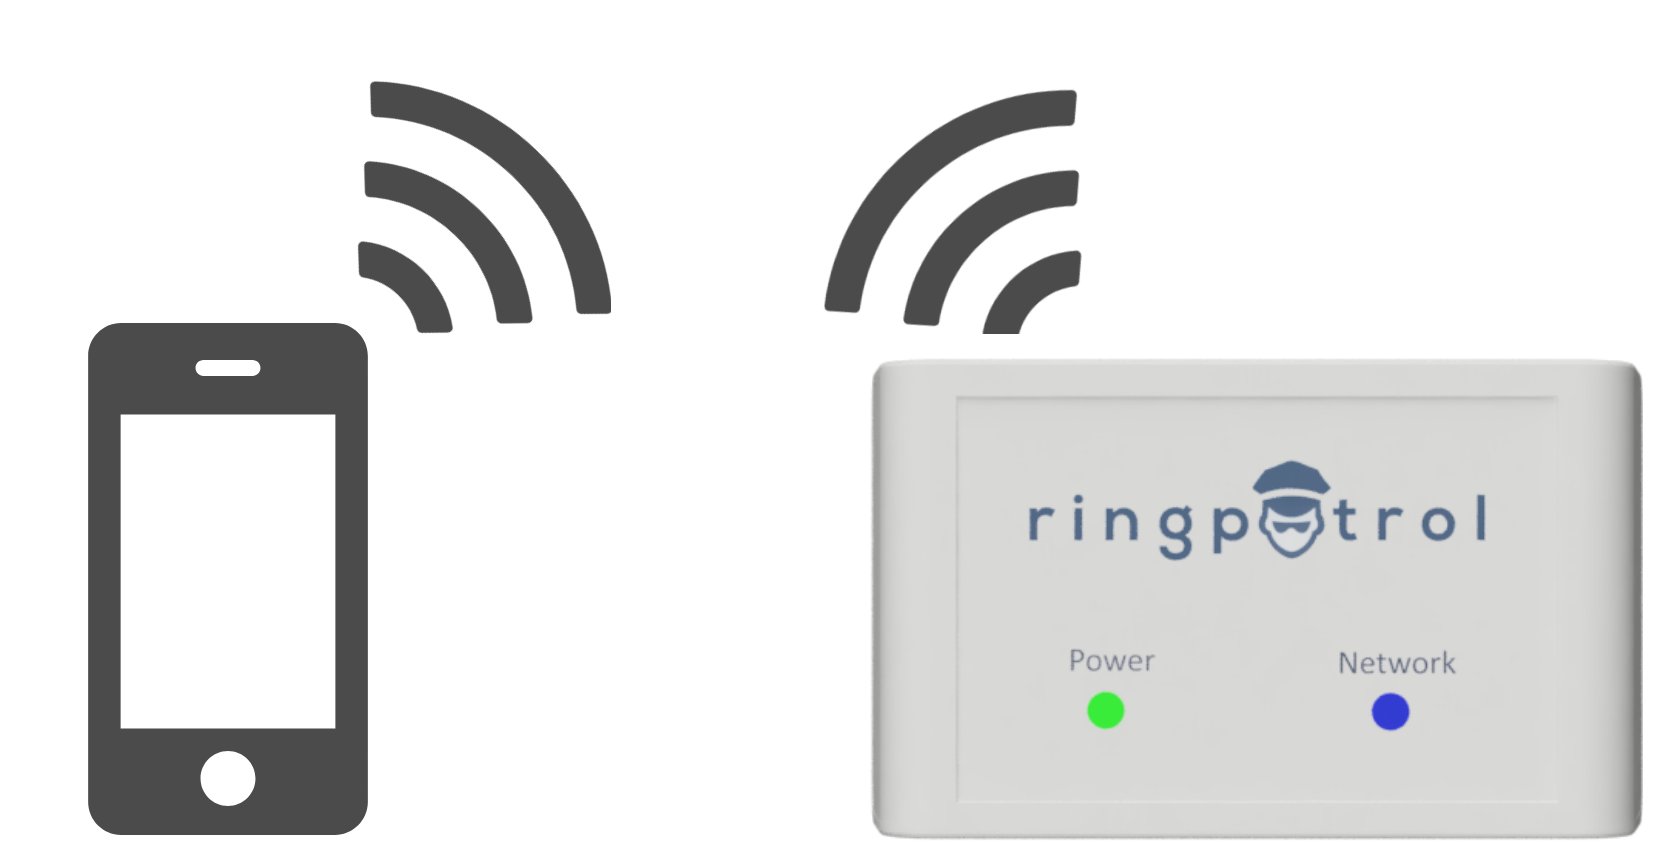 Initial Setup - When you first install your RingPatrol device, it doesn't know how to connect to your network.  To tell it how to connect to your network we must first connect with RingPatrol directly, provide it with your network credentials, then it can connect to your home WiFi network.  To connect with RingPatrol directly it must act as a WiFi router.  It does this by default any time the blue LED is blinking.To connect directly to RingPatrol follow the steps below:1.  Go to your devices WiFi settings and connect to the network named RingPatrol.2. When prompted, use